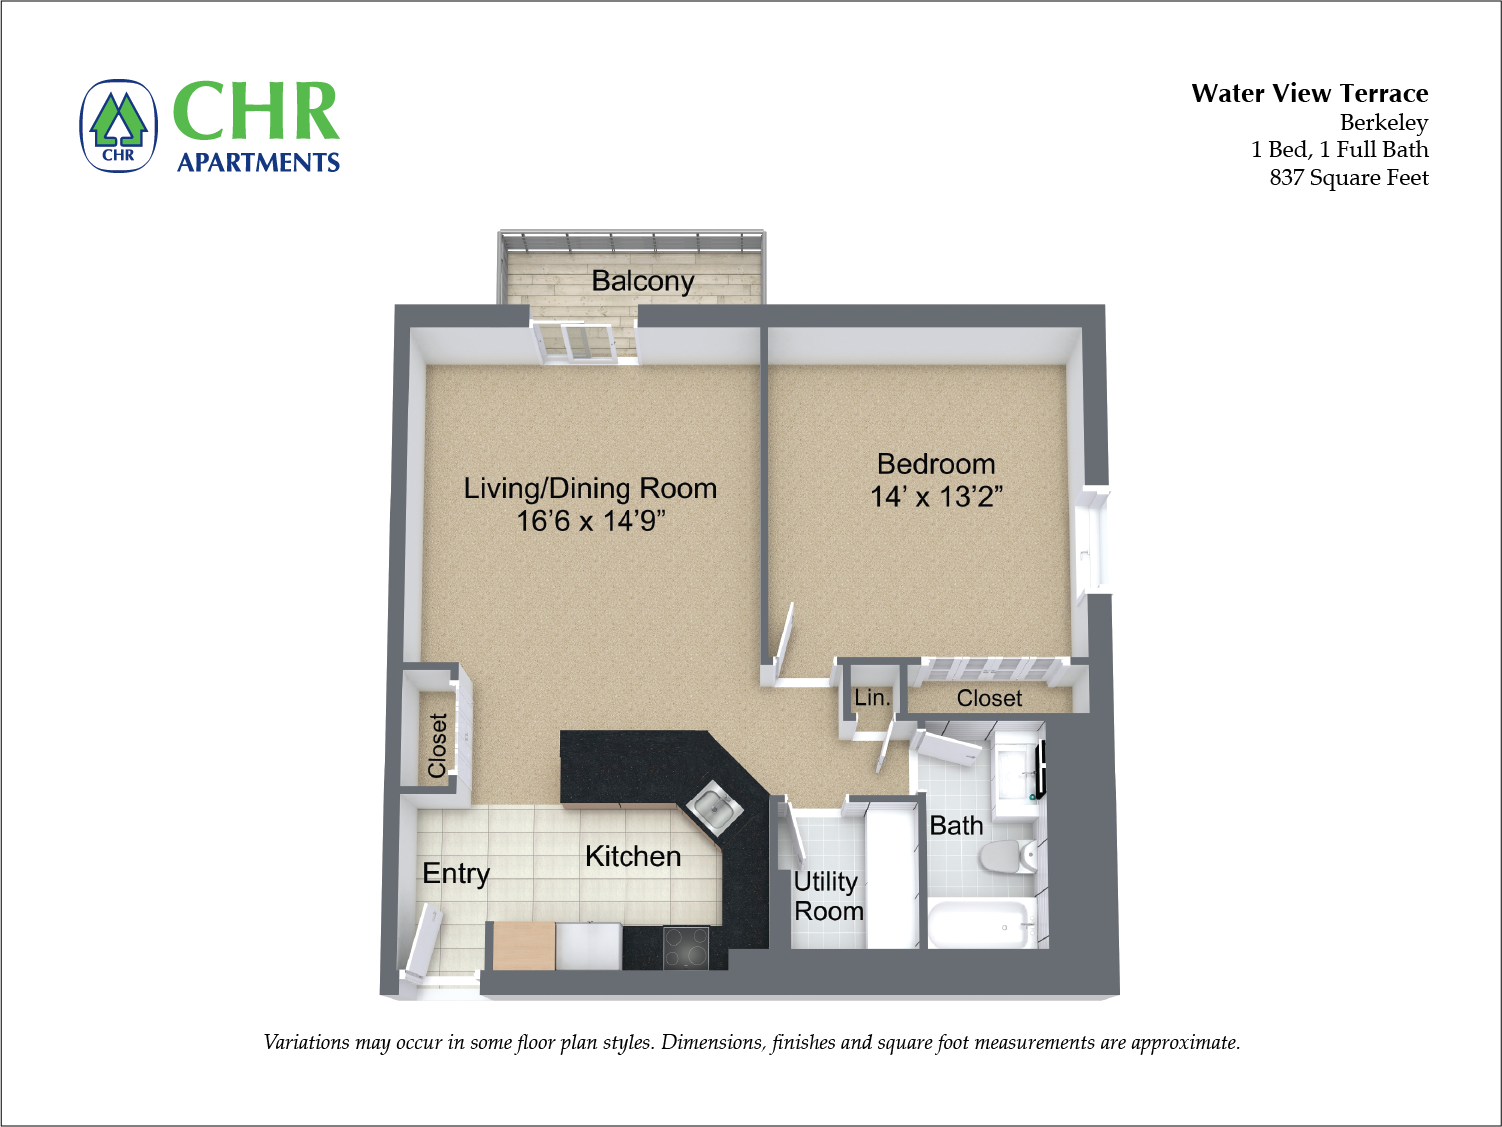 Floor plan 1 Bedroom with Balcony and Extra Closets image 5